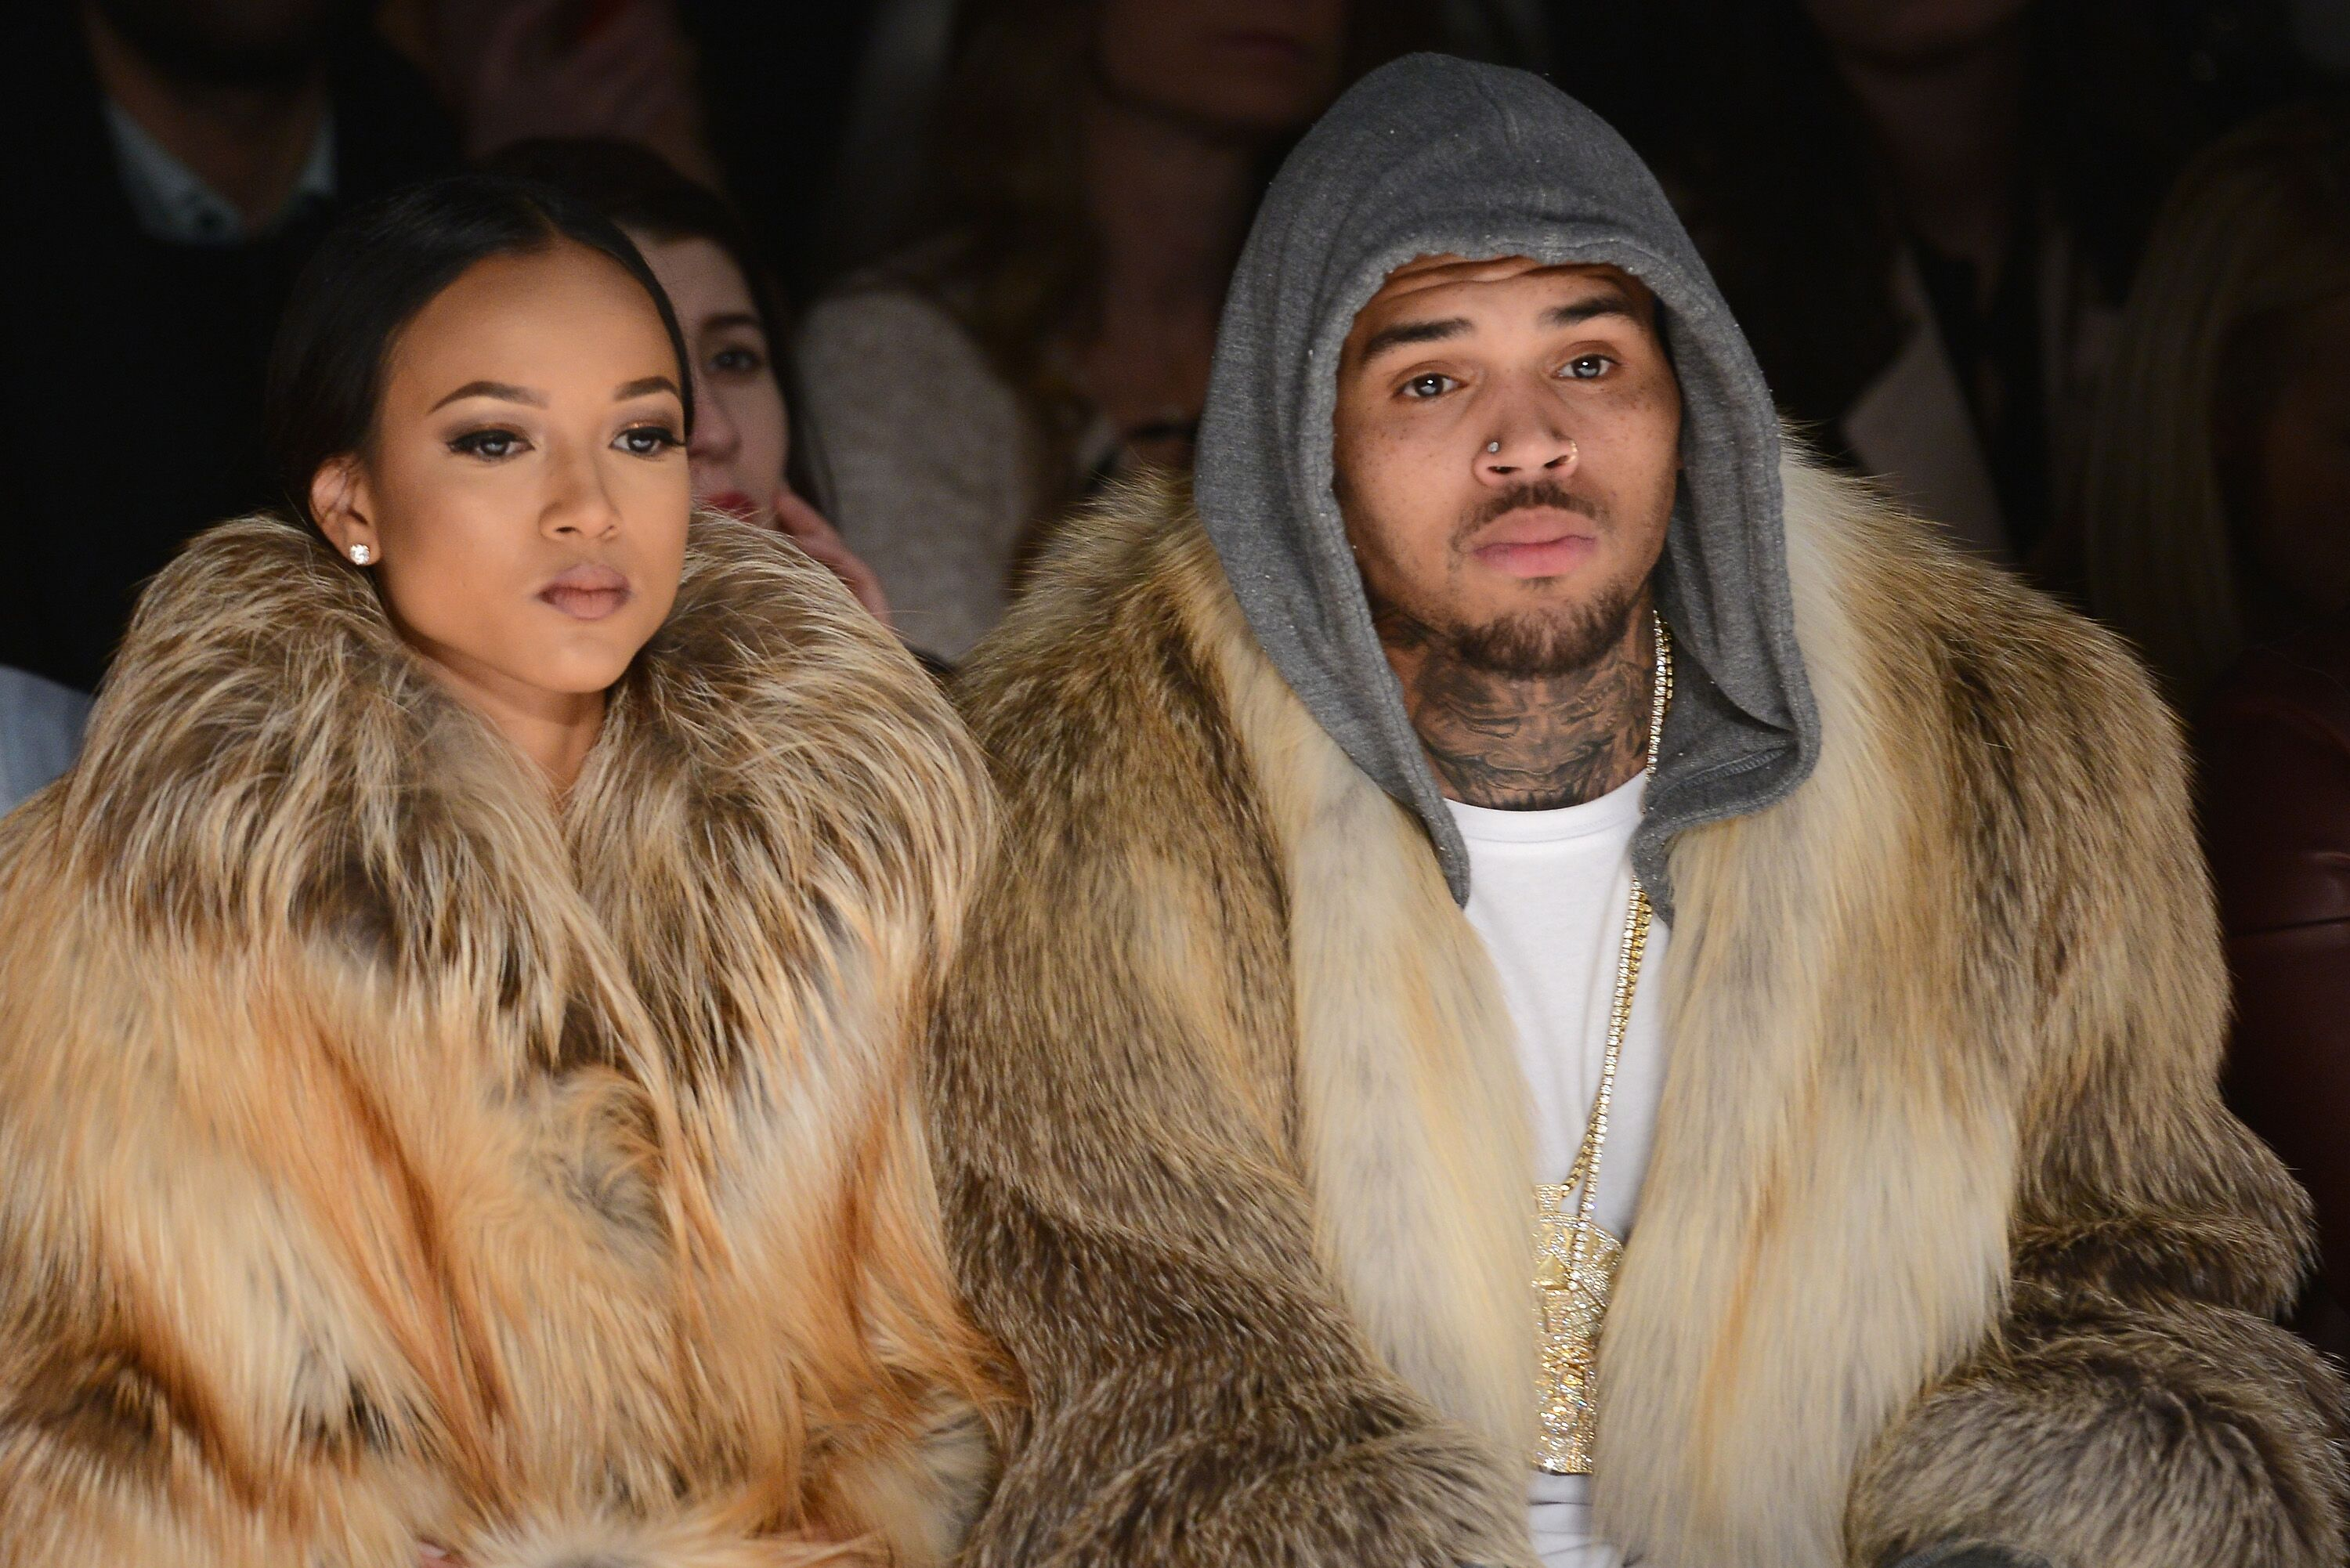 Chris Brown and Ammika Harris at the Mercedes-Benz Fashion Week in February 2015. | Photo: Getty Images